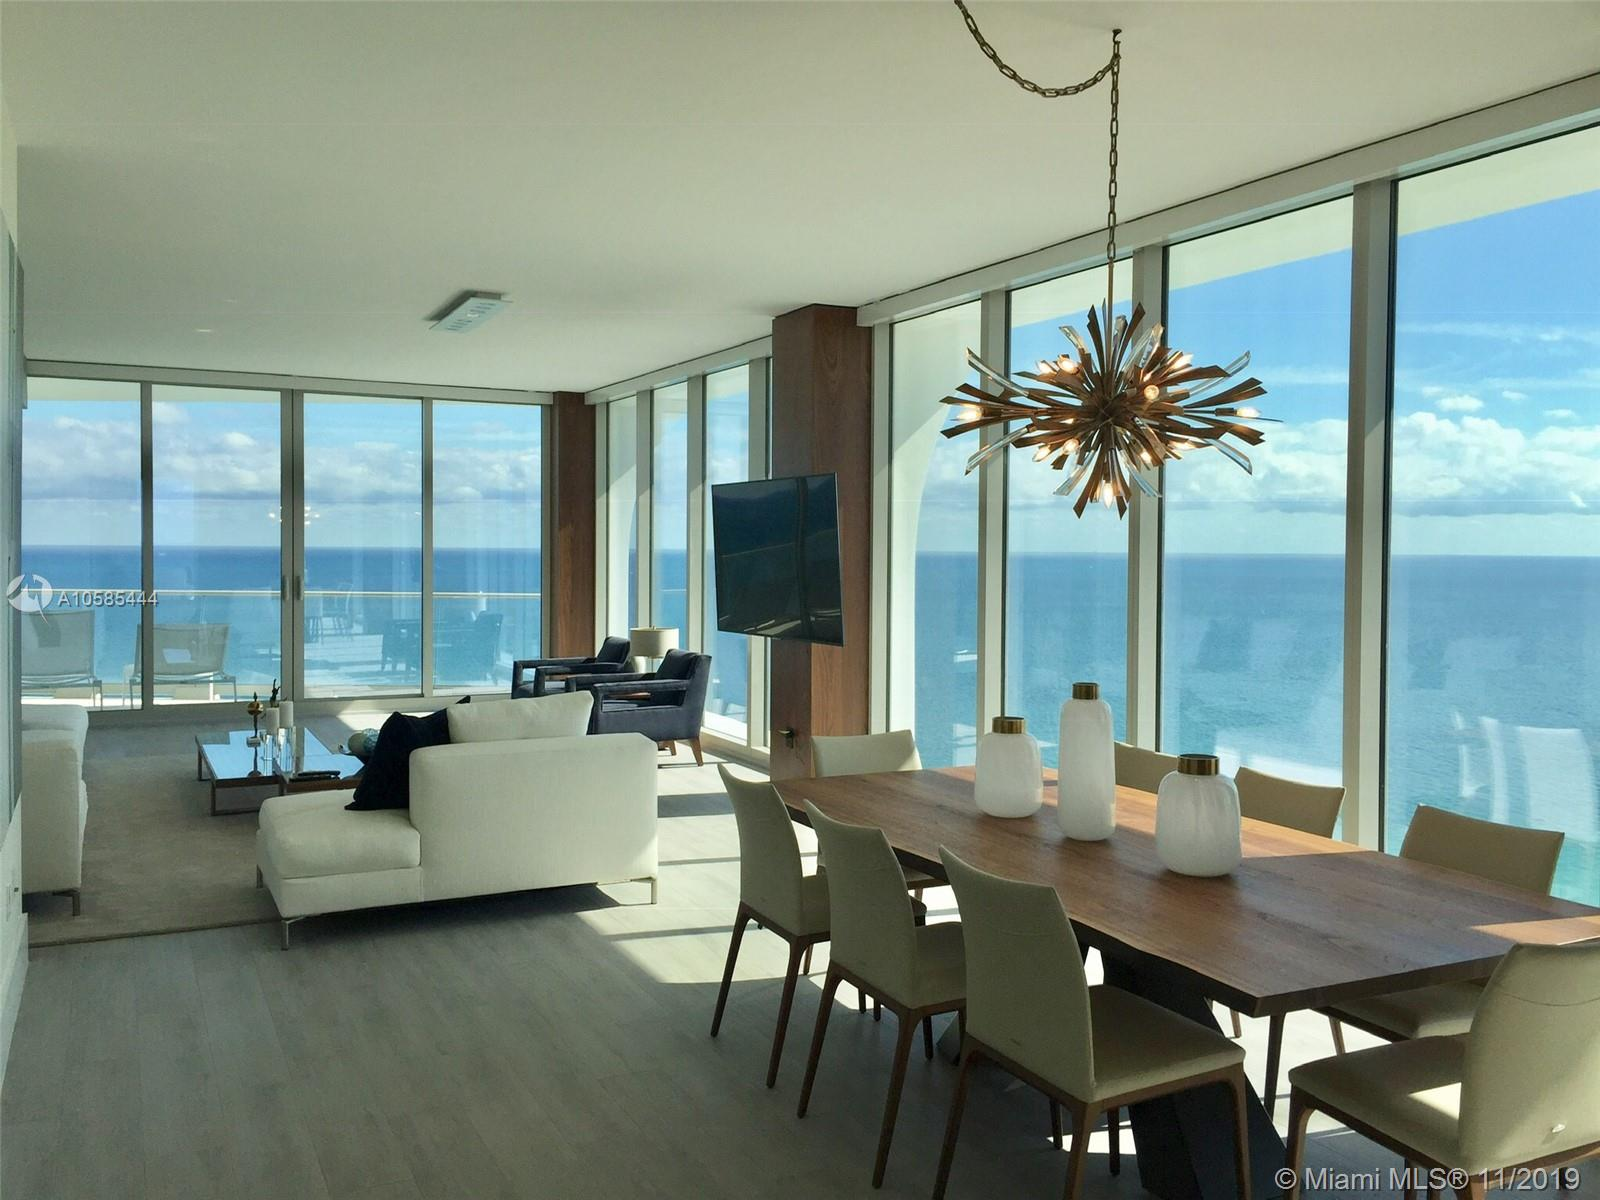 16901 COLLINS AVENUE # 2701, Sunny Isles Beach, Florida 33160, 4 Bedrooms Bedrooms, ,6 BathroomsBathrooms,Residential,For Sale,16901 COLLINS AVENUE # 2701,A10585444